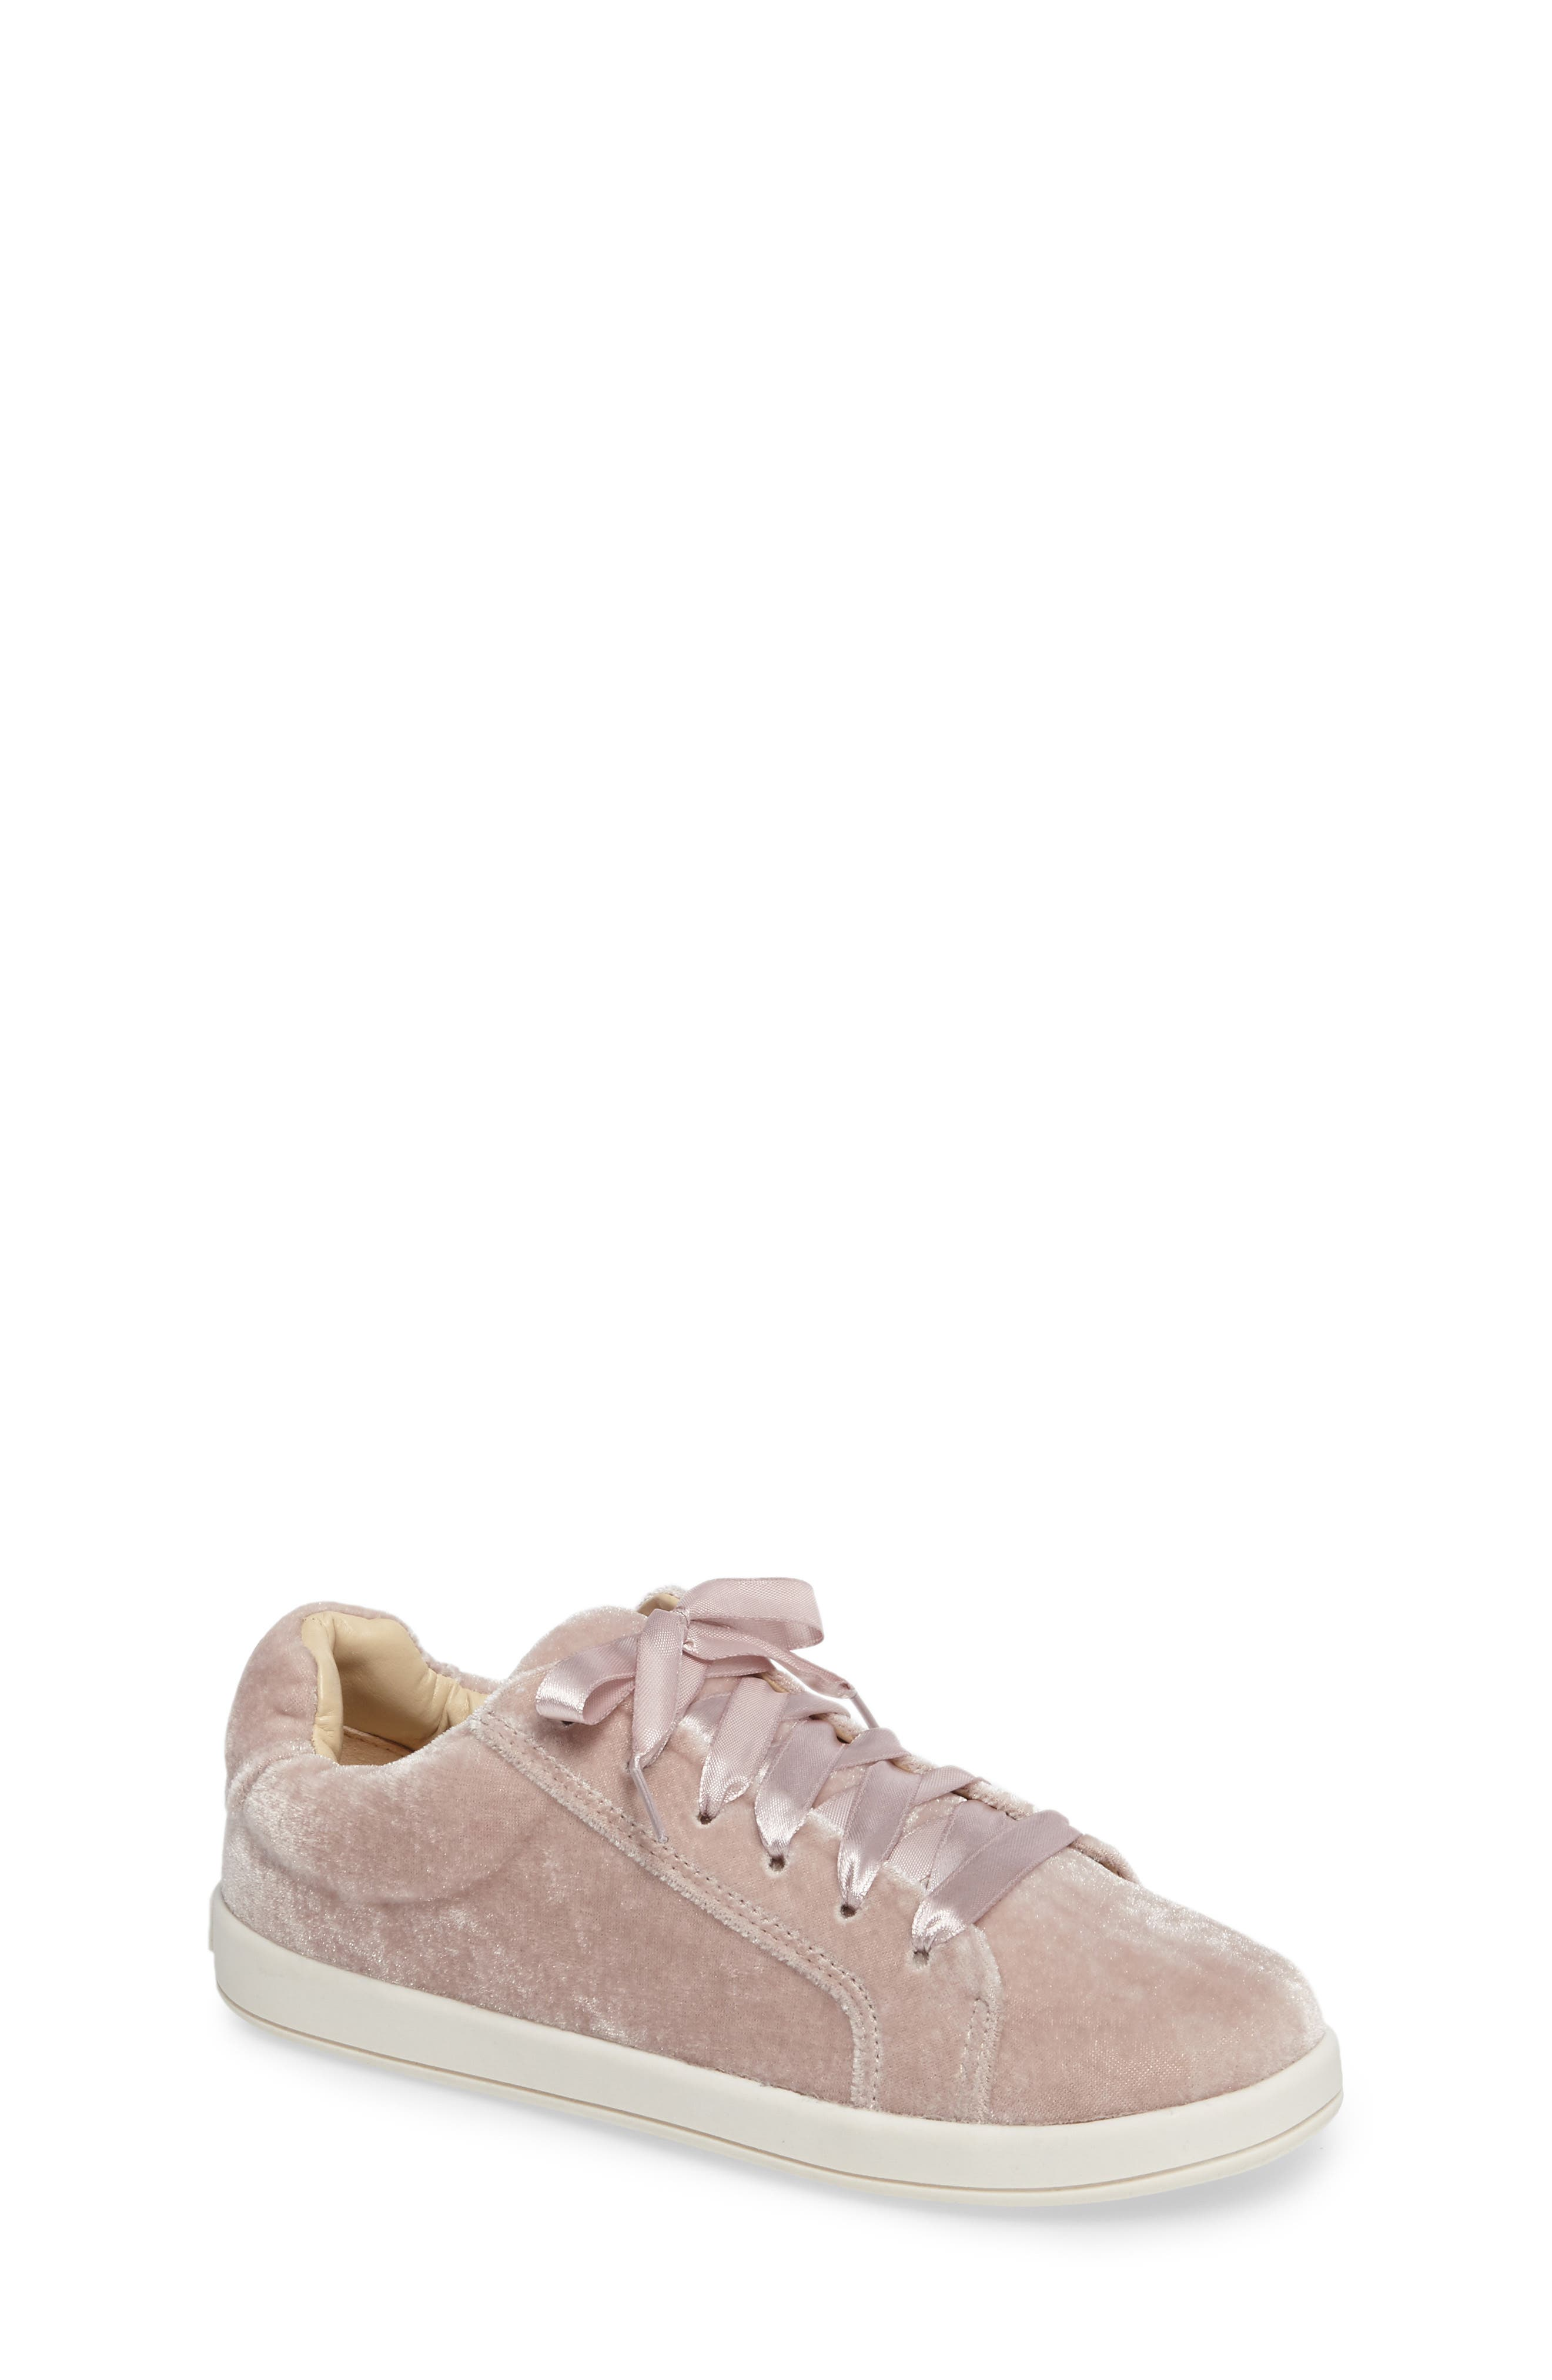 Sam Edelman Cynthia Skye Sneaker (Toddler, Little Kid & Big Kid)